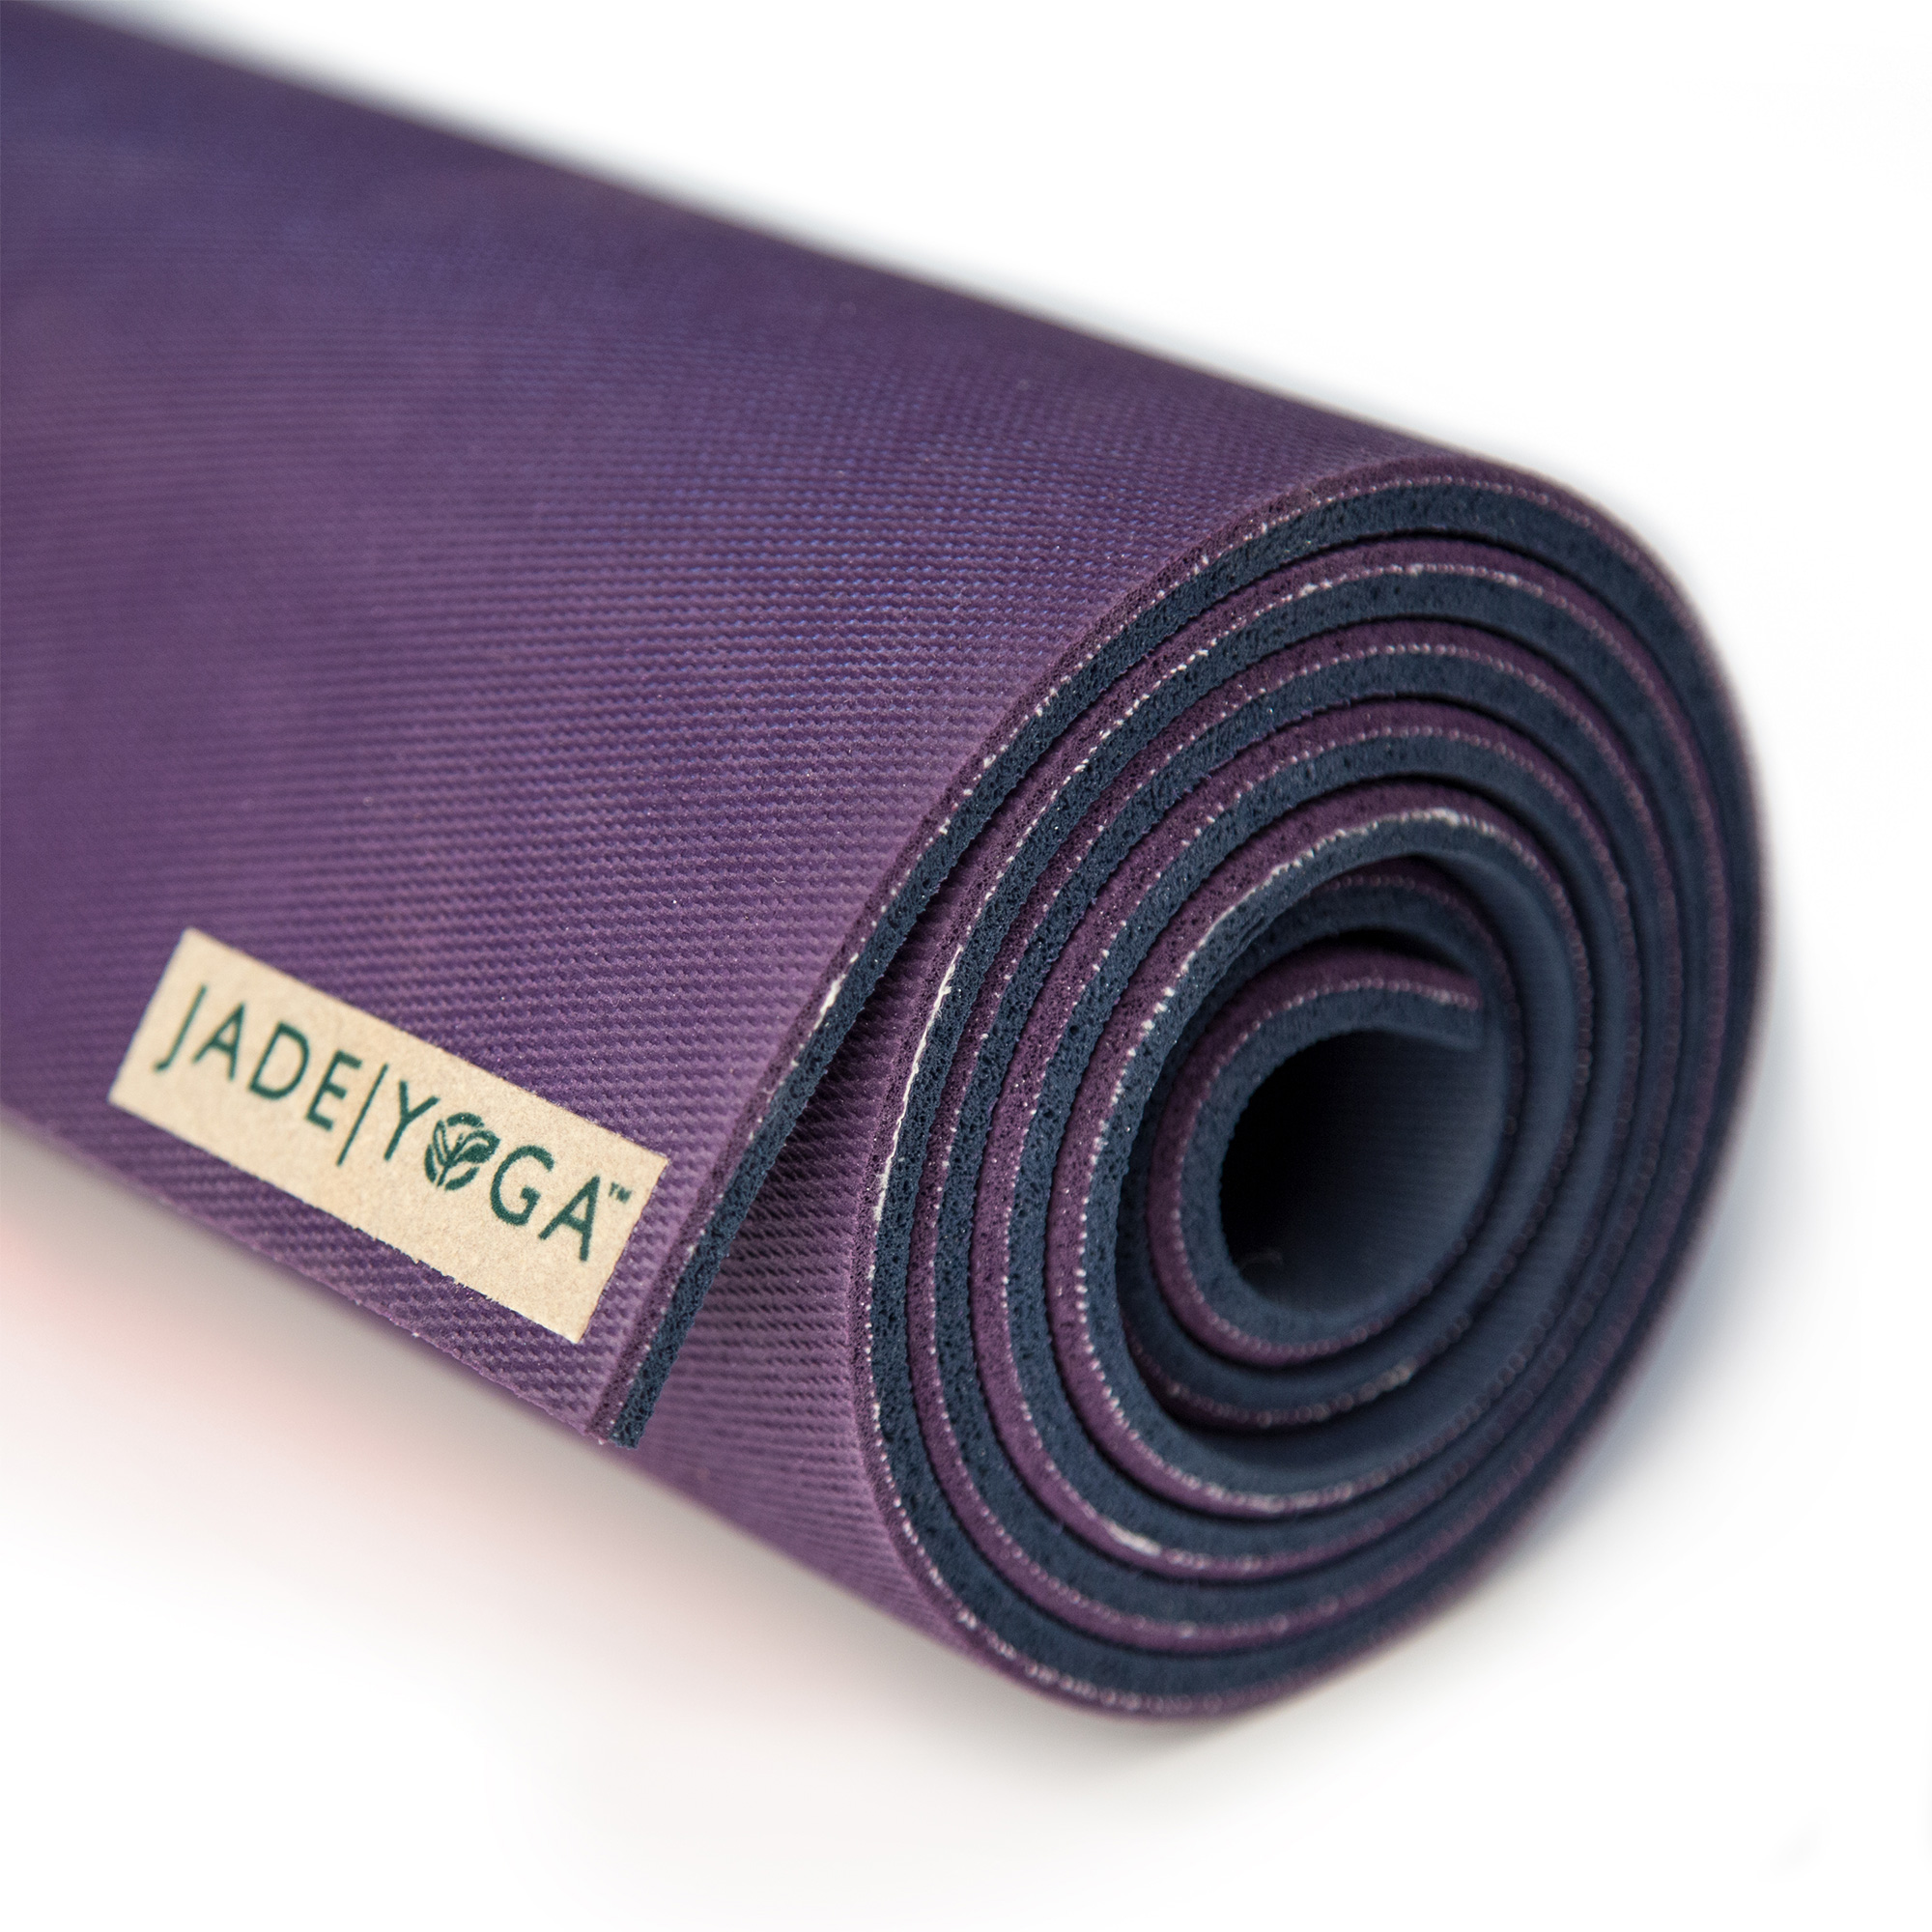 manduka yoga mats pin inch black fitness pilates professional and harmony mat pro jade